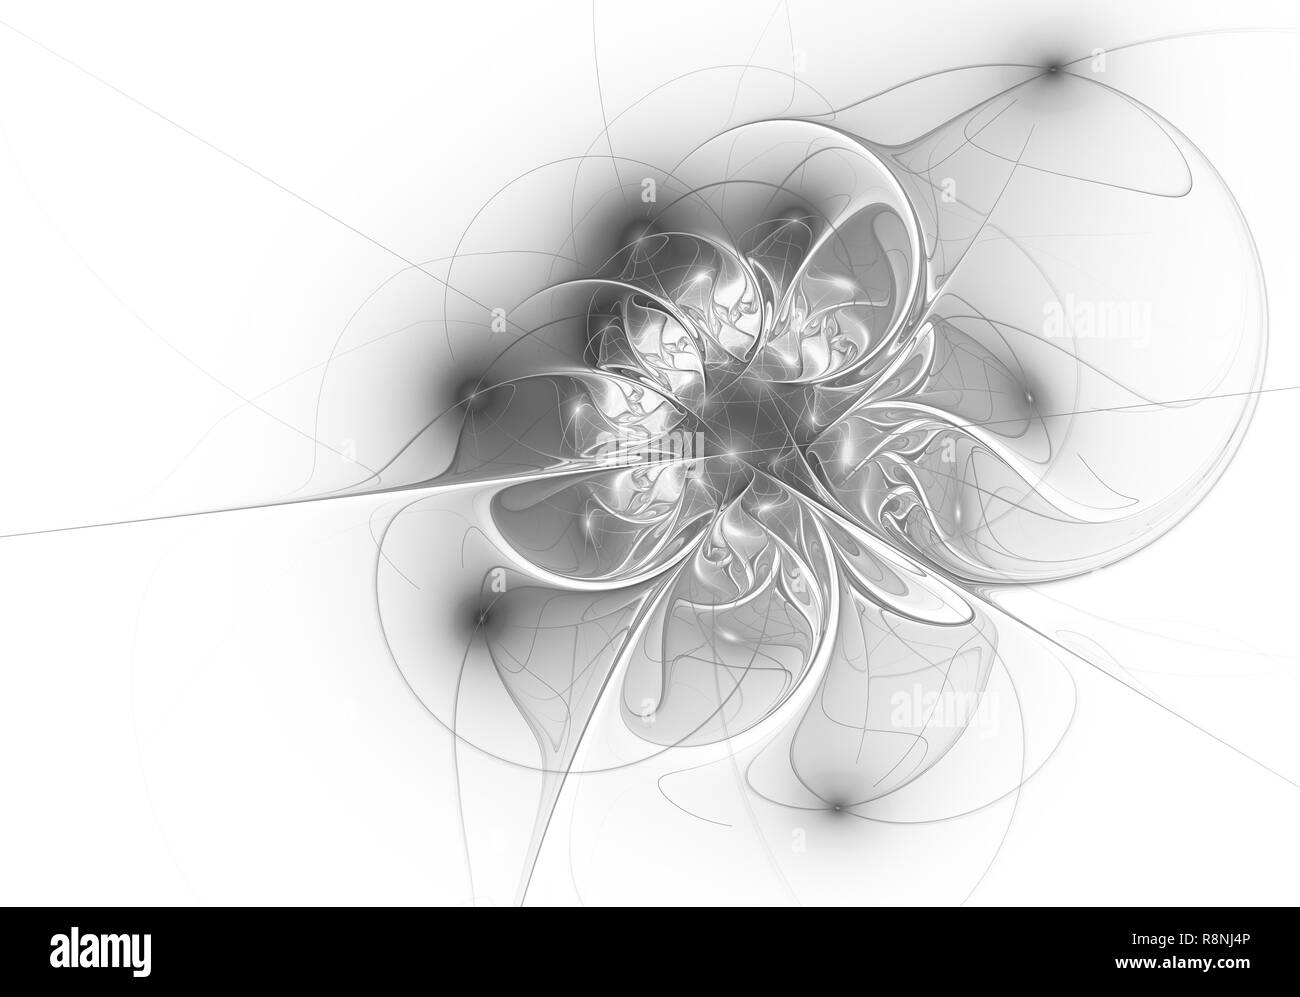 Elegant golden, extremely delicate and translucent flower composition with a silky surface. Computer generated graphics. - Stock Image